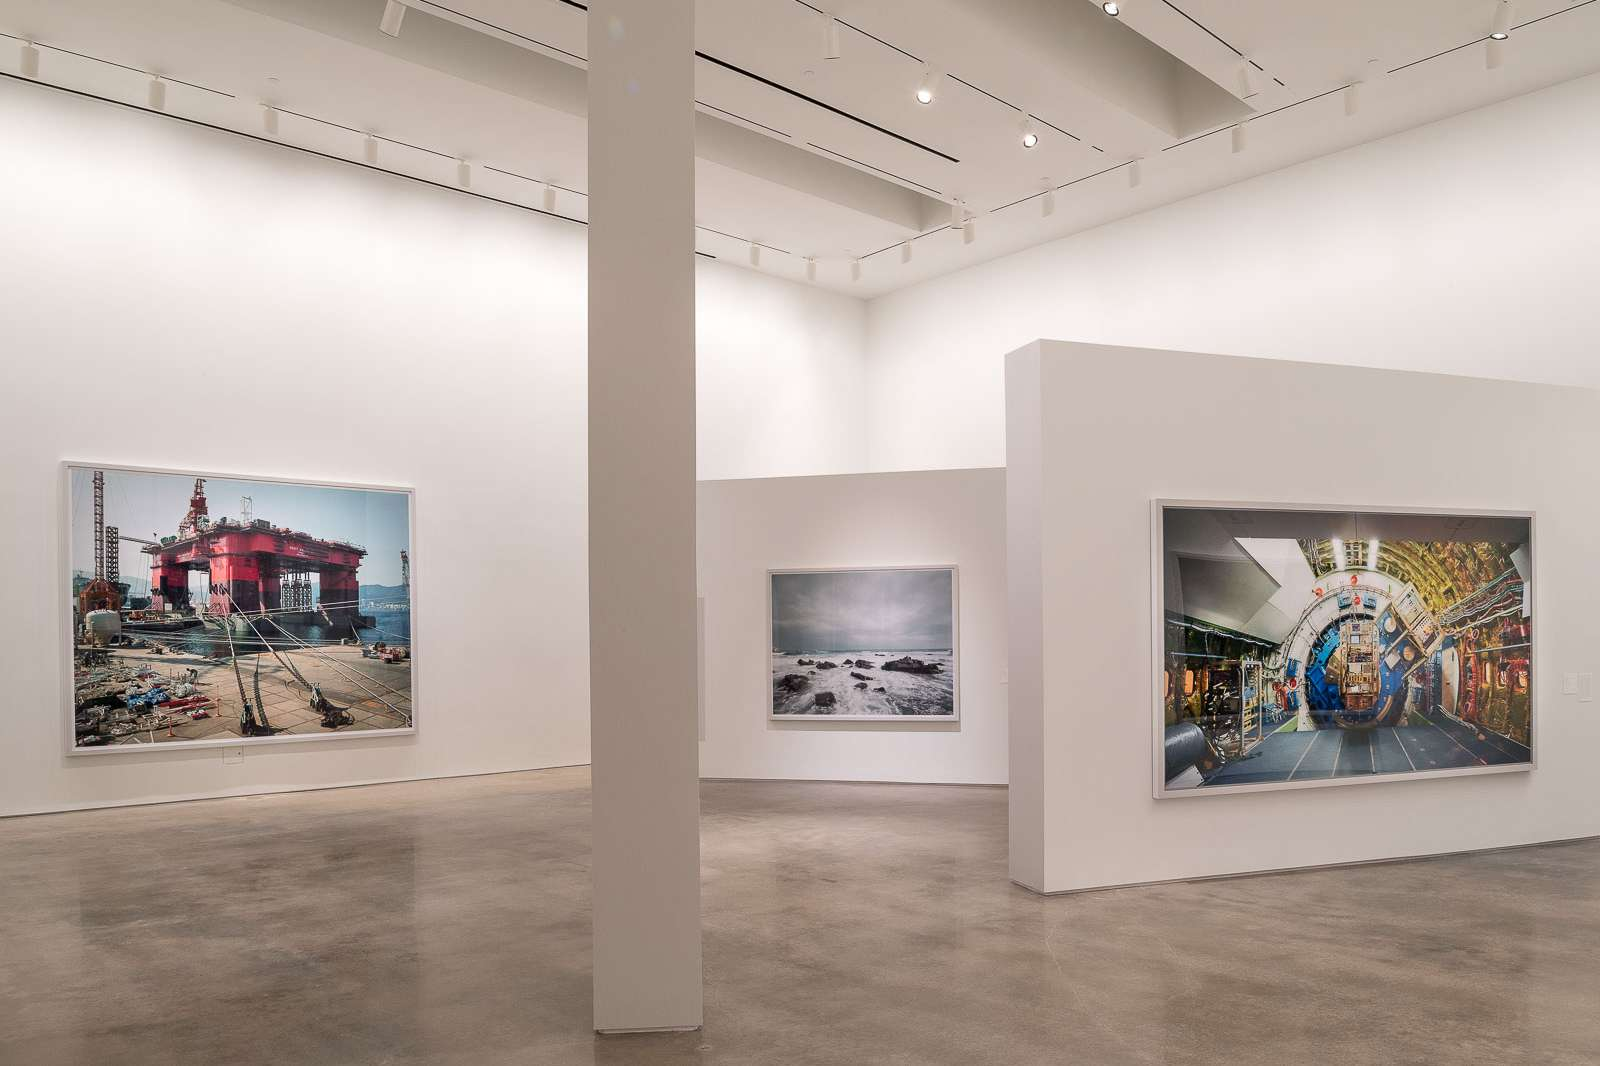 dInstallation view of Thomas Struth: Nature & Politics at the Moody Center for the Arts. ©Thomas Struth. Photo: Nash Baker